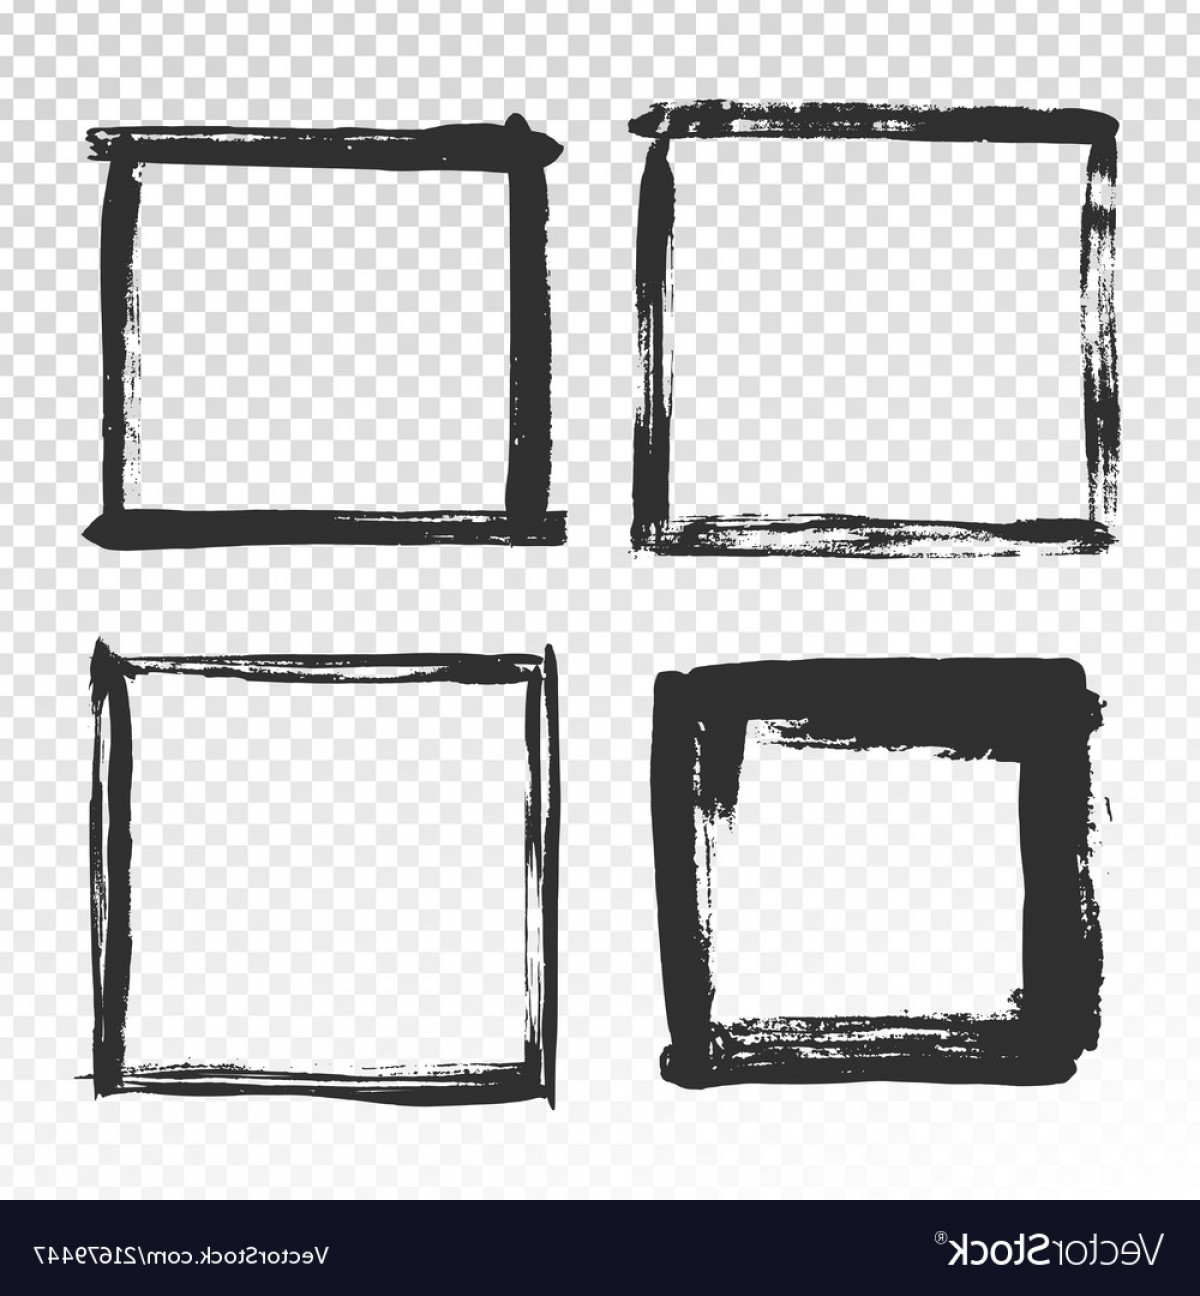 Square Black Vector Border Frame: Brush Strokes Frame Black Grunge Square Borders Vector